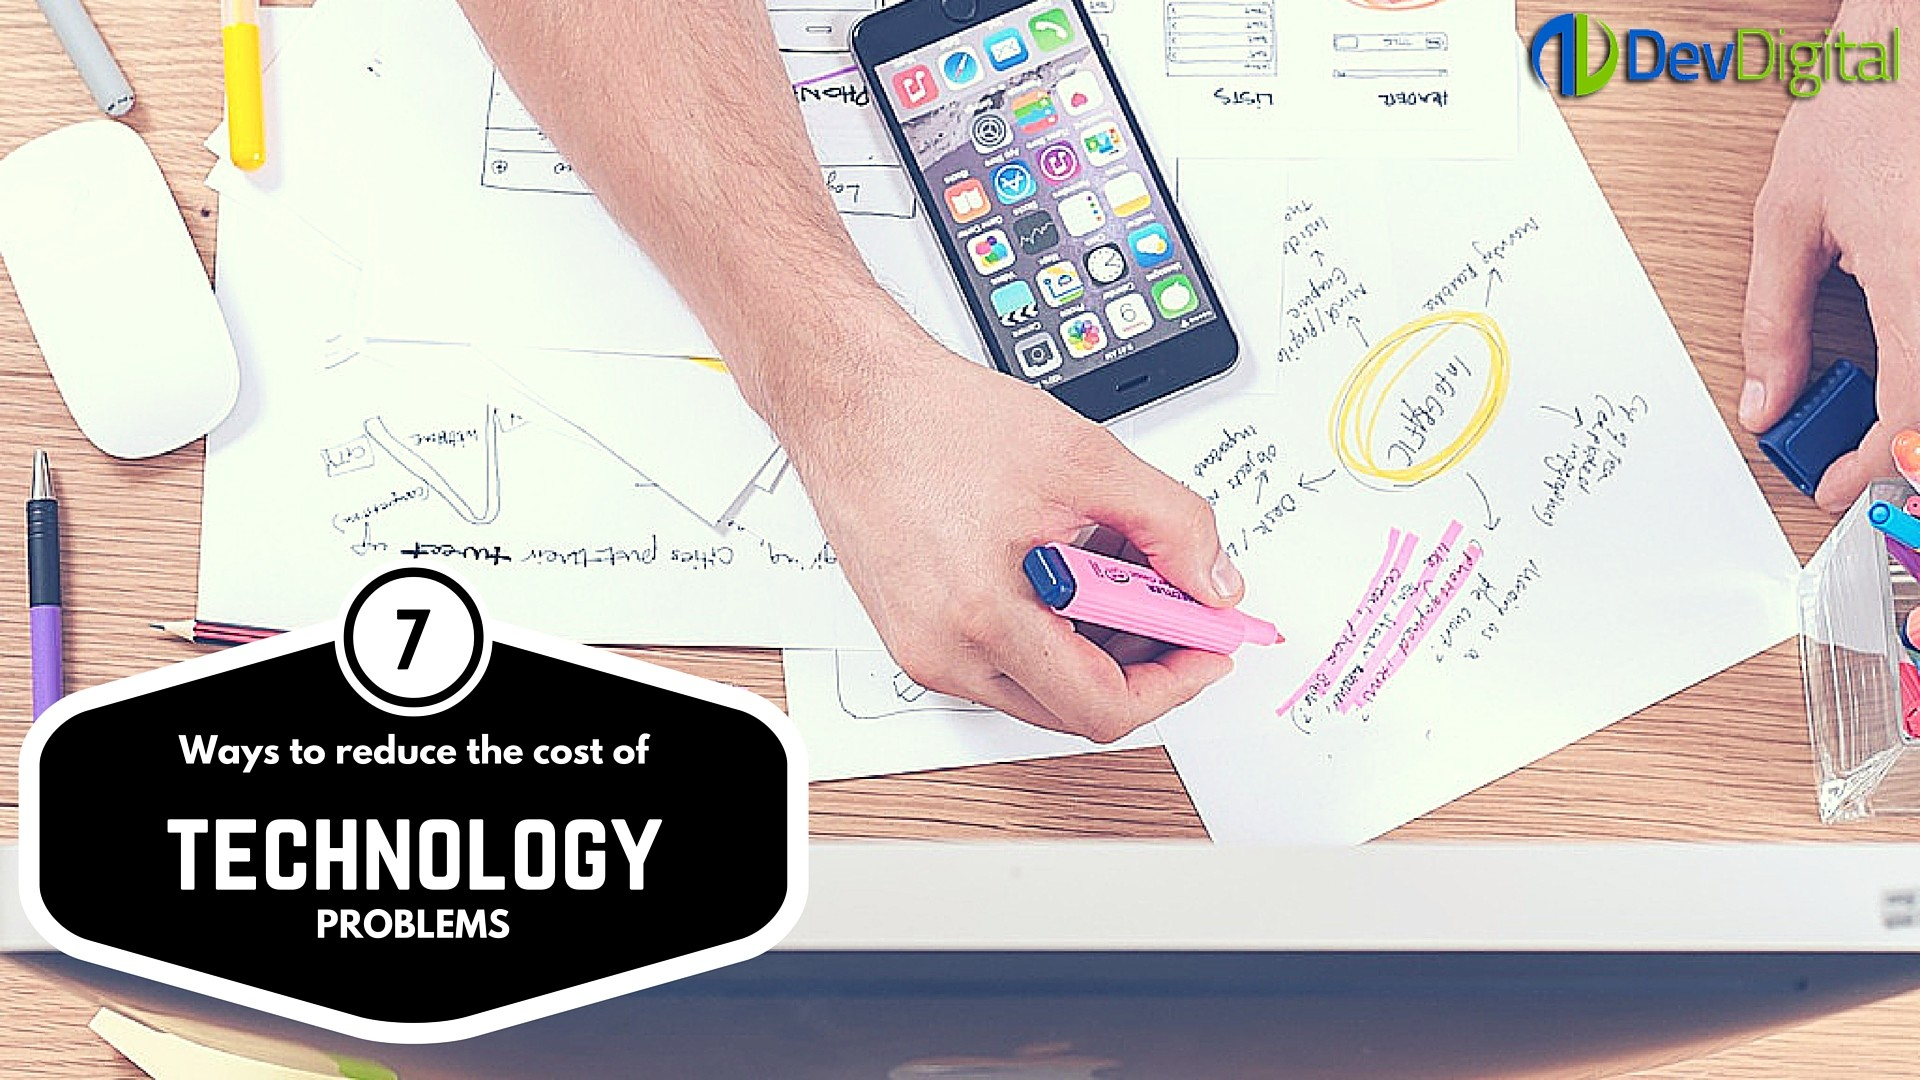 Seven Ways to Reduce the Cost of Technology Problems